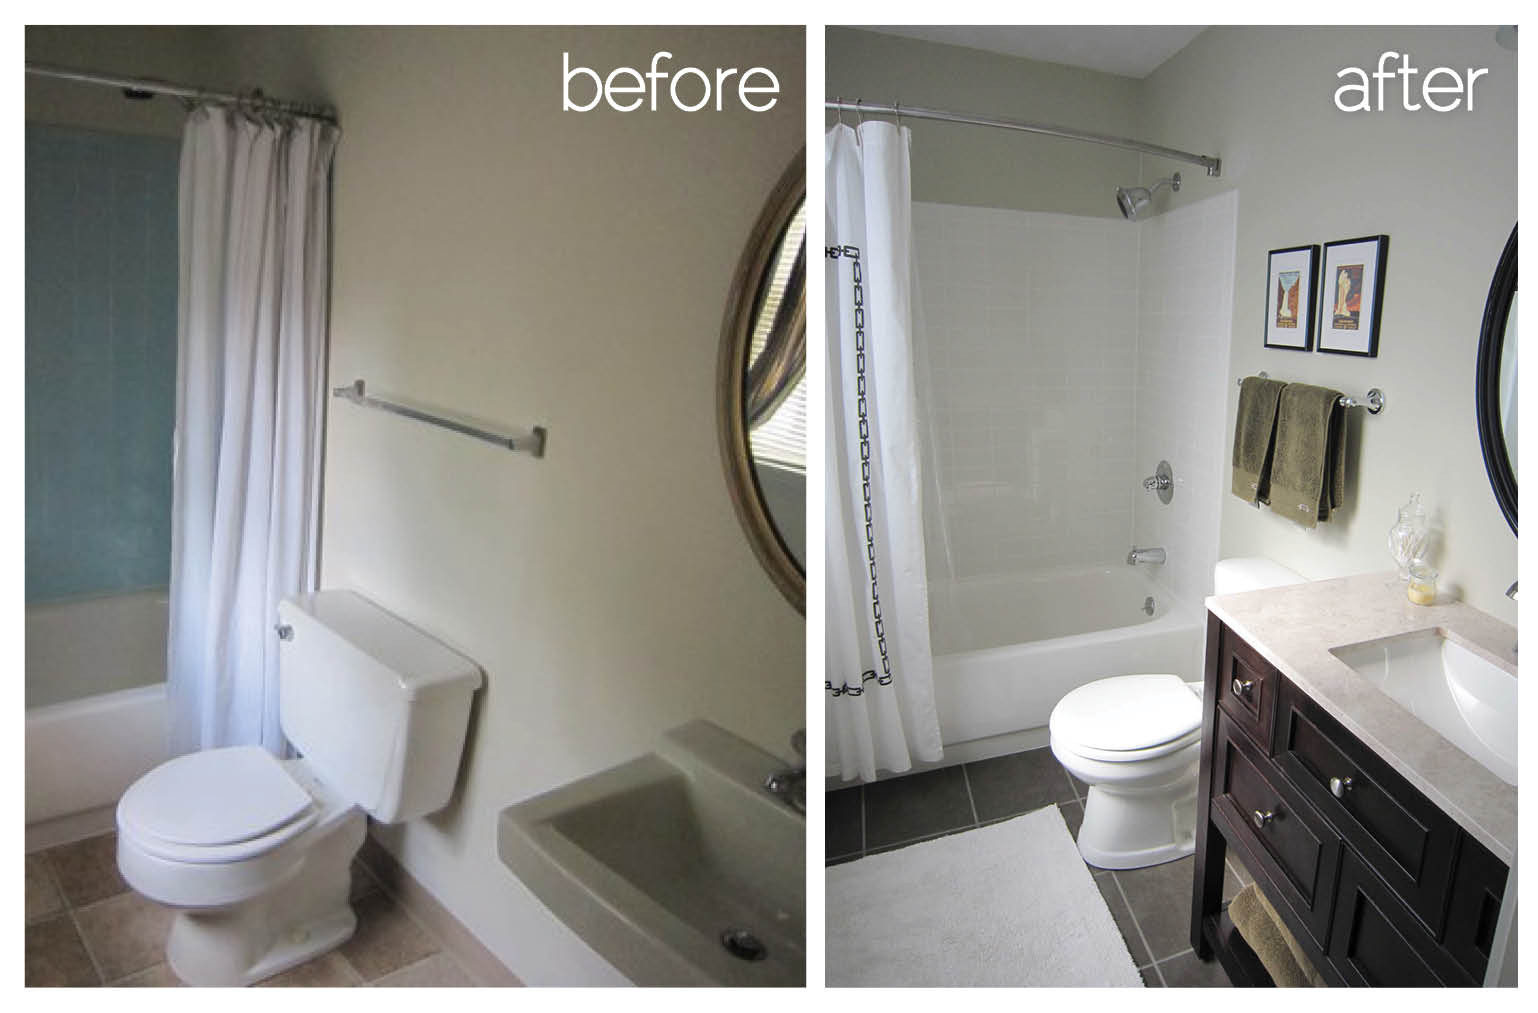 Cozy Fresh and Cheap Bathroom Remodel | AnOceanView.com ~ Home Design Magazine  for cheap bathroom remodel